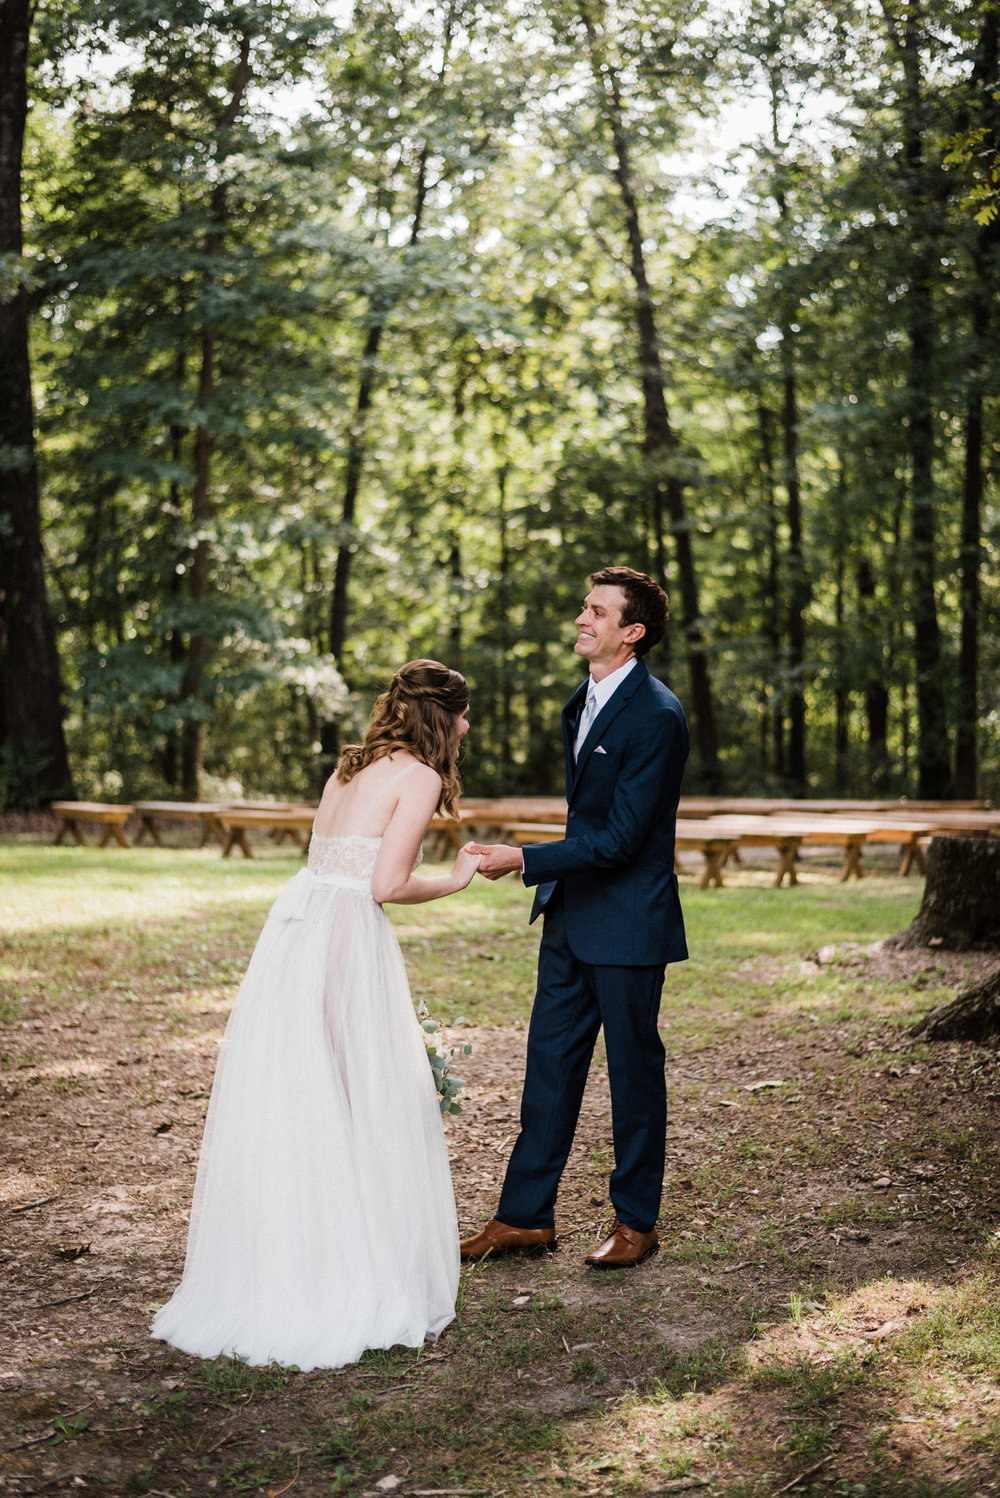 Tanner Burge Photography - Emily & Jason First Look at Kindred North.jpg